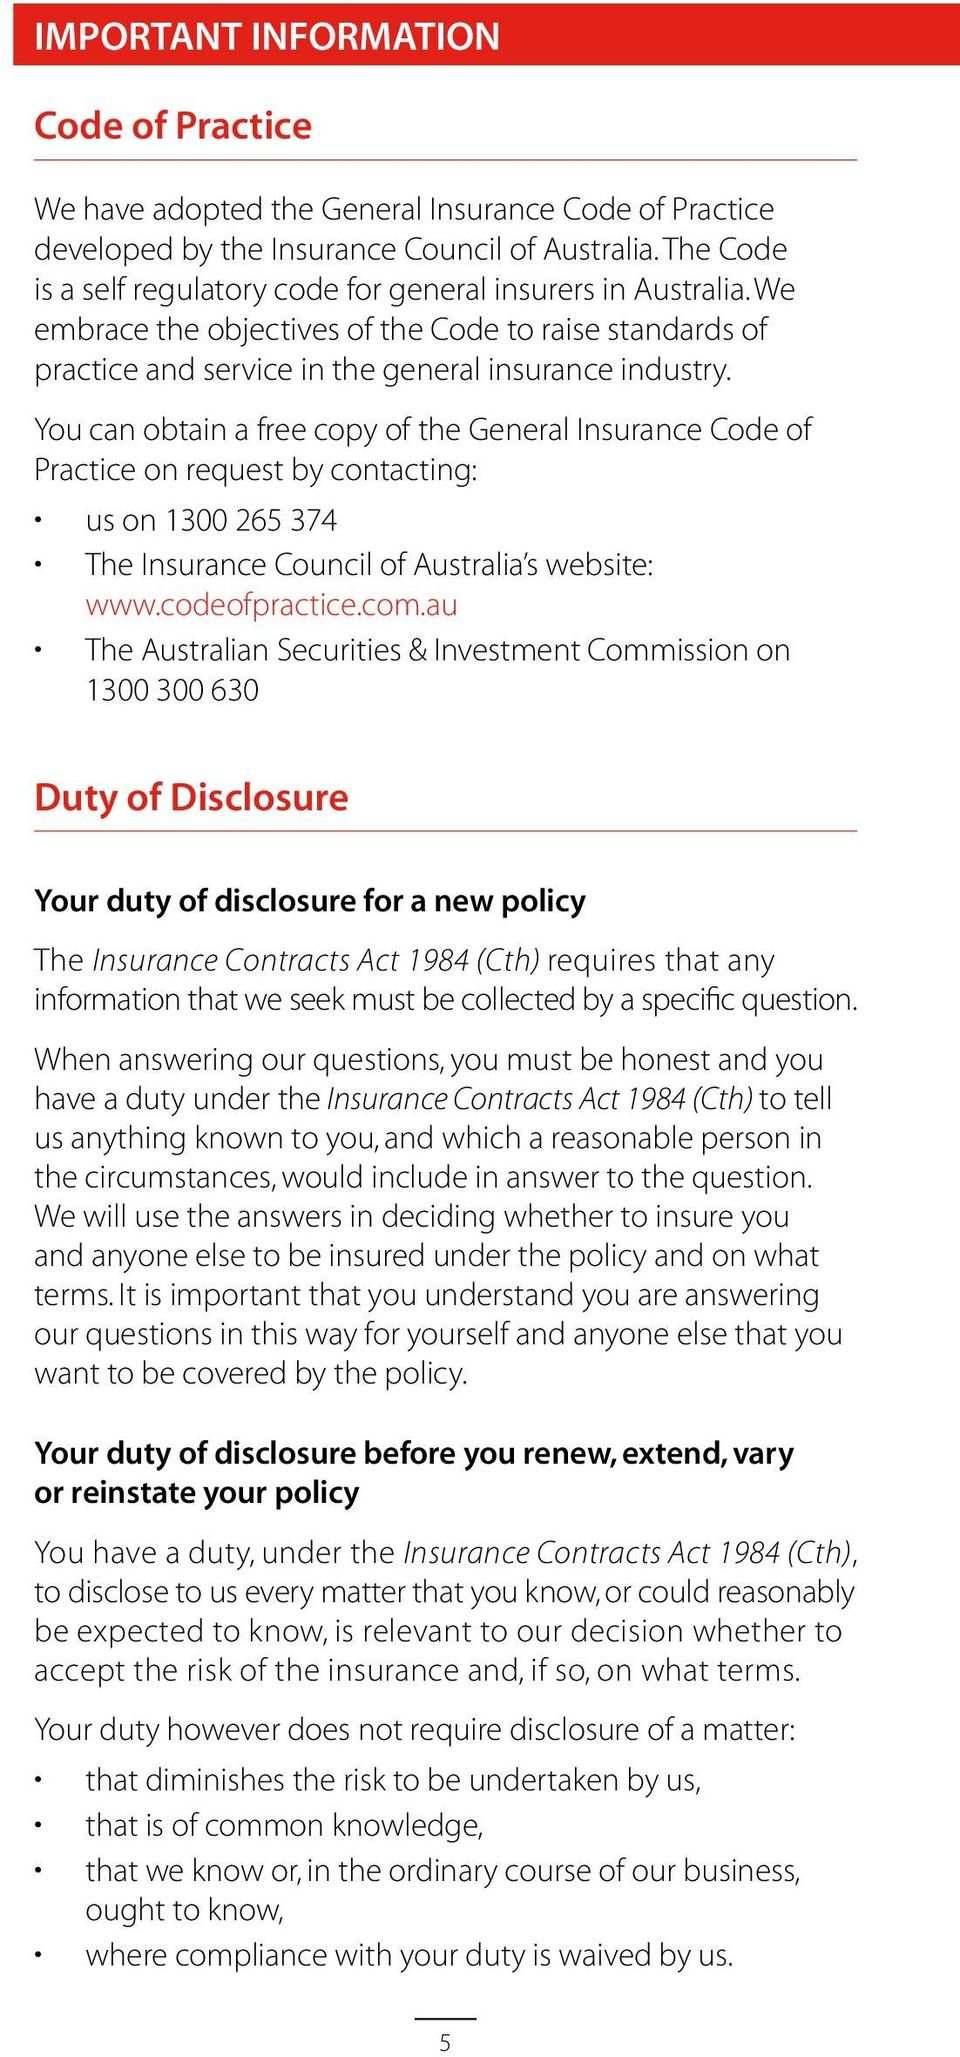 You can obtain a free copy of the General Insurance Code of Practice on request by contacting: us on 1300 265 374 The Insurance Council of Australia s website: www.codeofpractice.com.